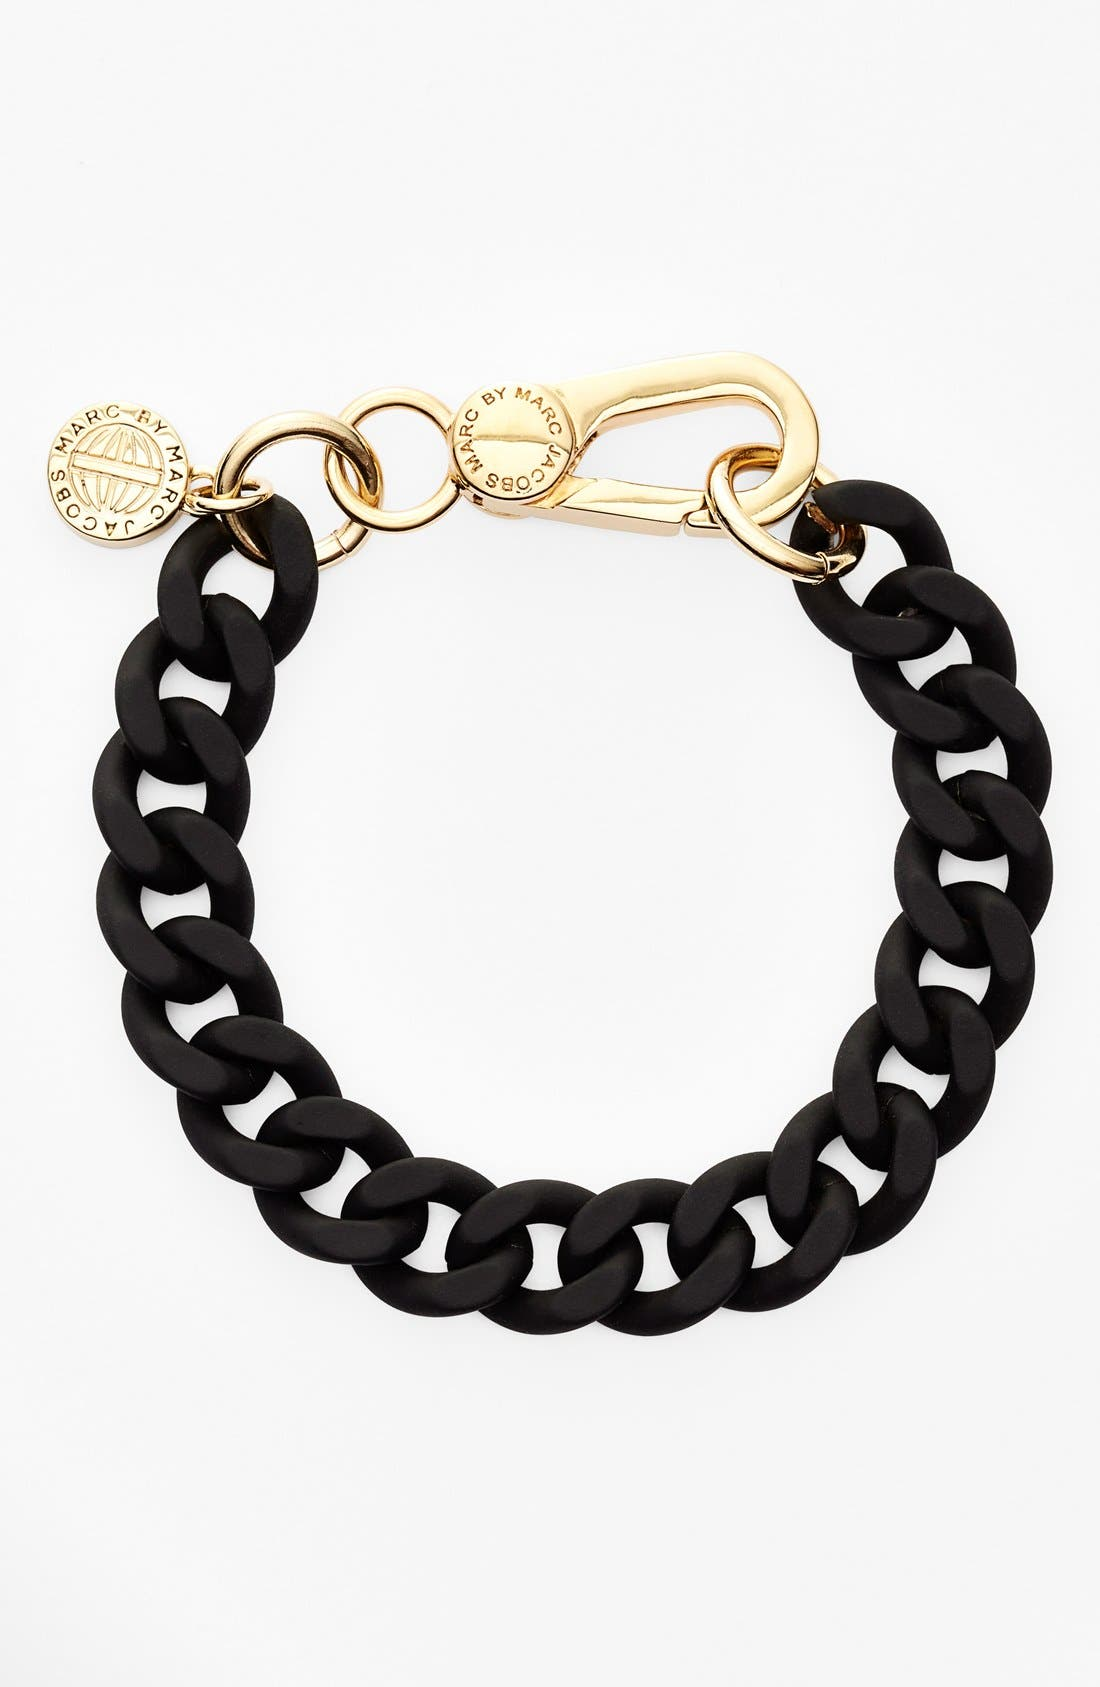 MARC BY MARC JACOBS, 'Key Items' Rubber Chain Bracelet, Main thumbnail 1, color, 001